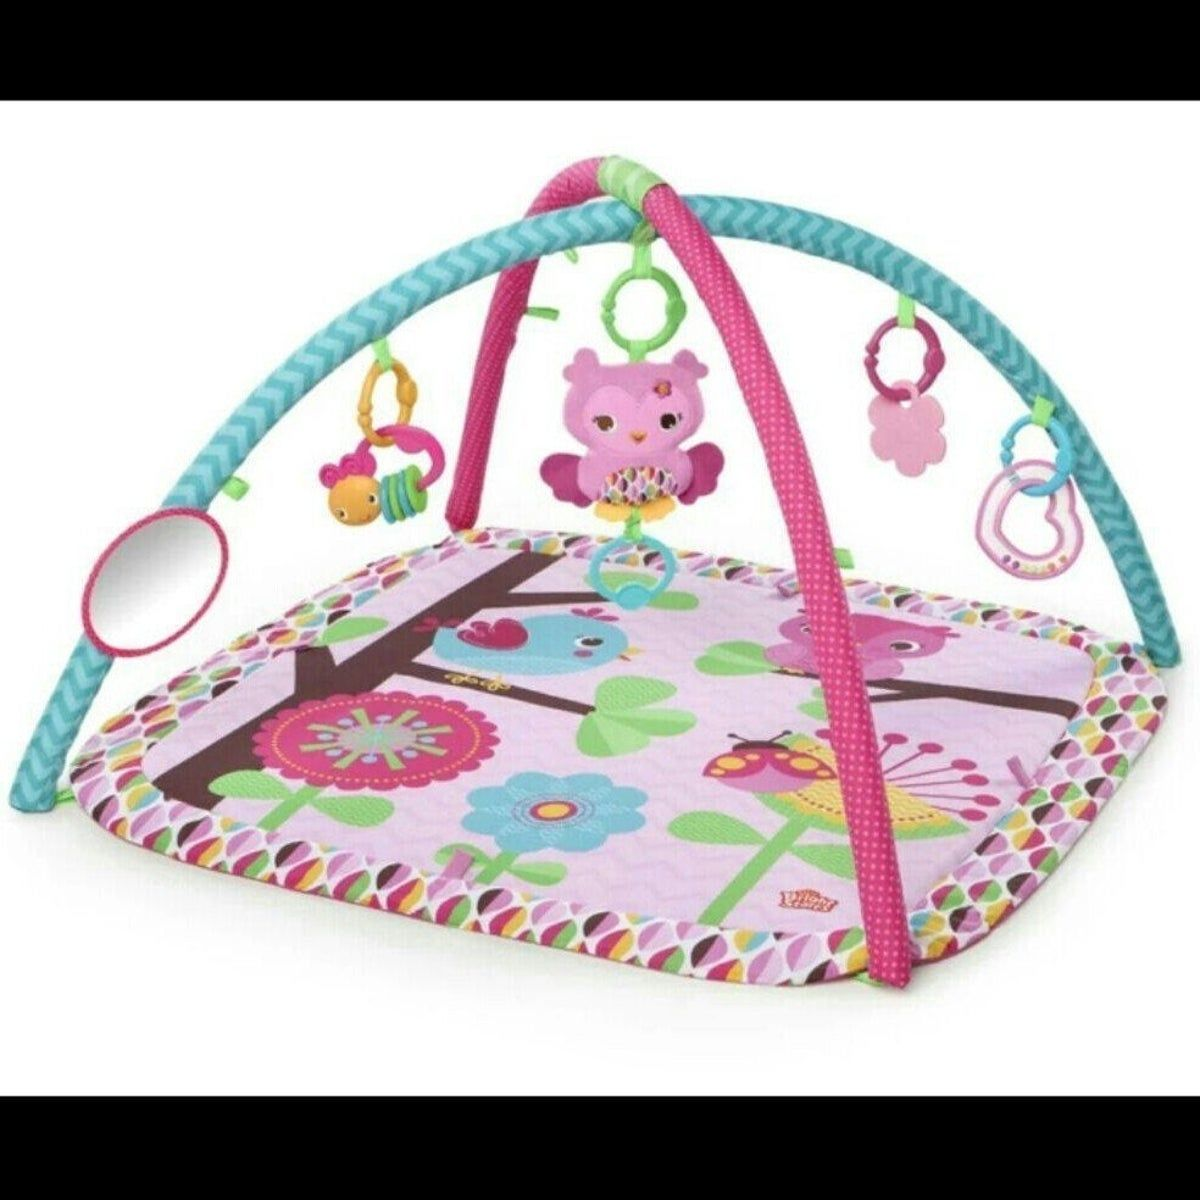 Pin By Brklnpowers On Baby Alive In 2020 Baby Activity Gym Bright Starts Baby Gym